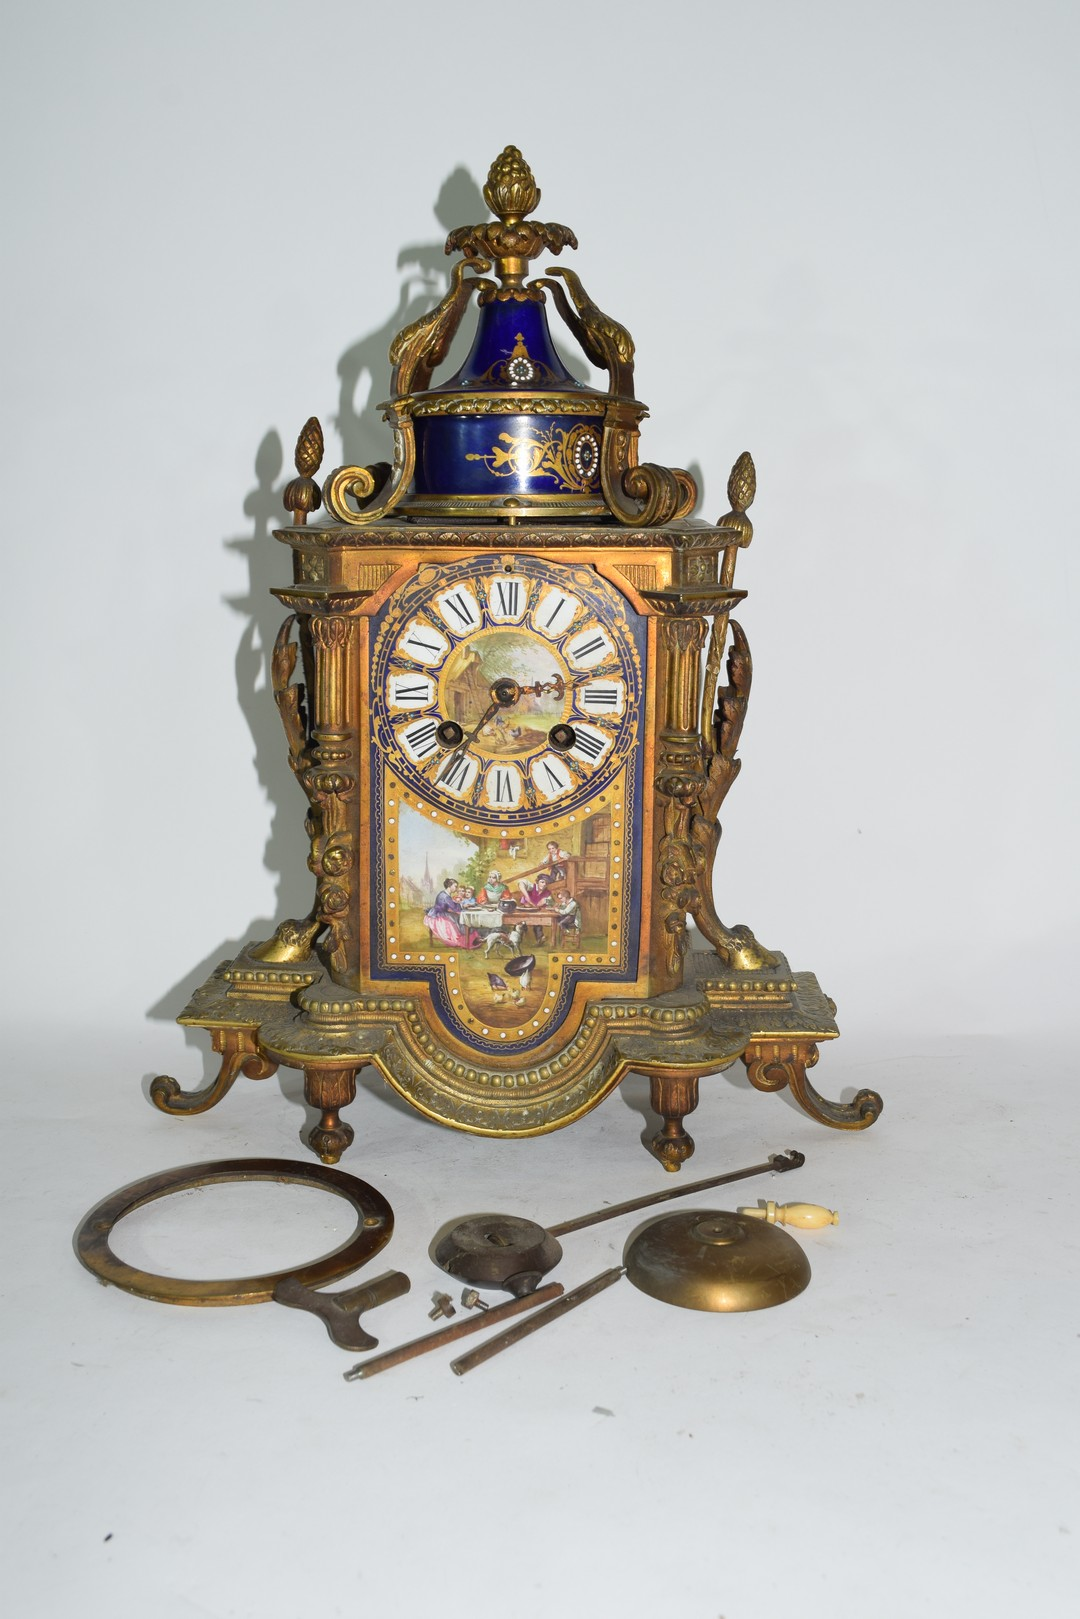 19th century French gilt metal clock with Sevres type porcelain panels